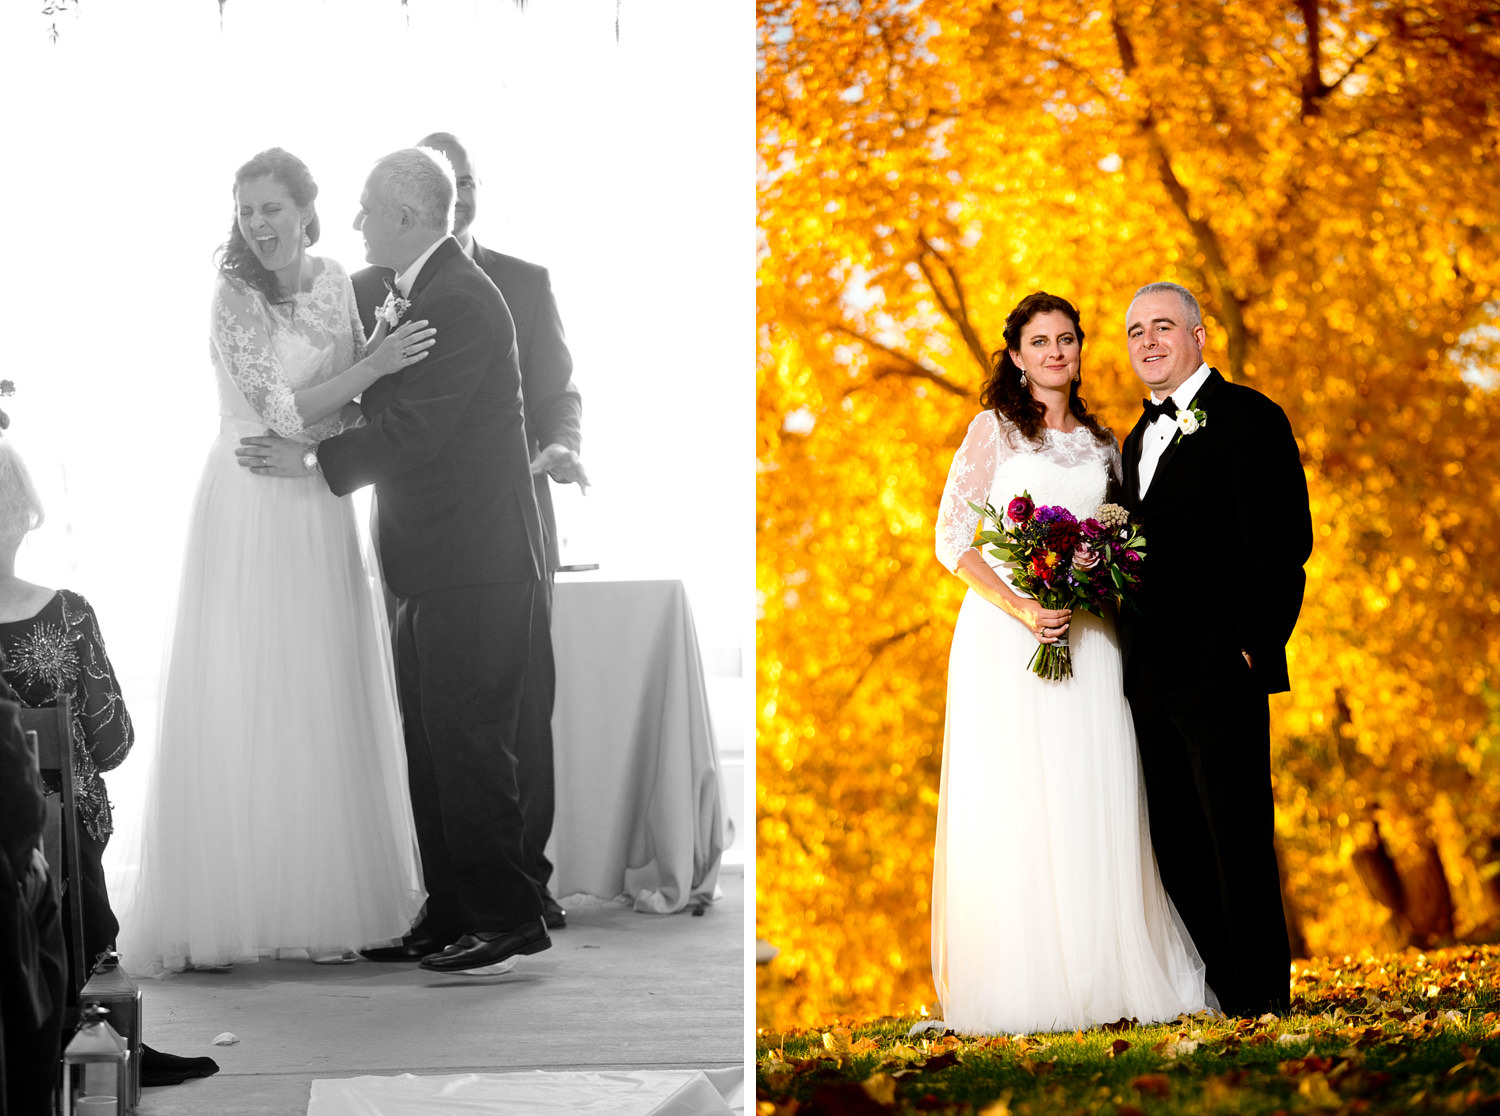 fort-collins-country-club-wedding-photographer-tomKphoto046.jpg